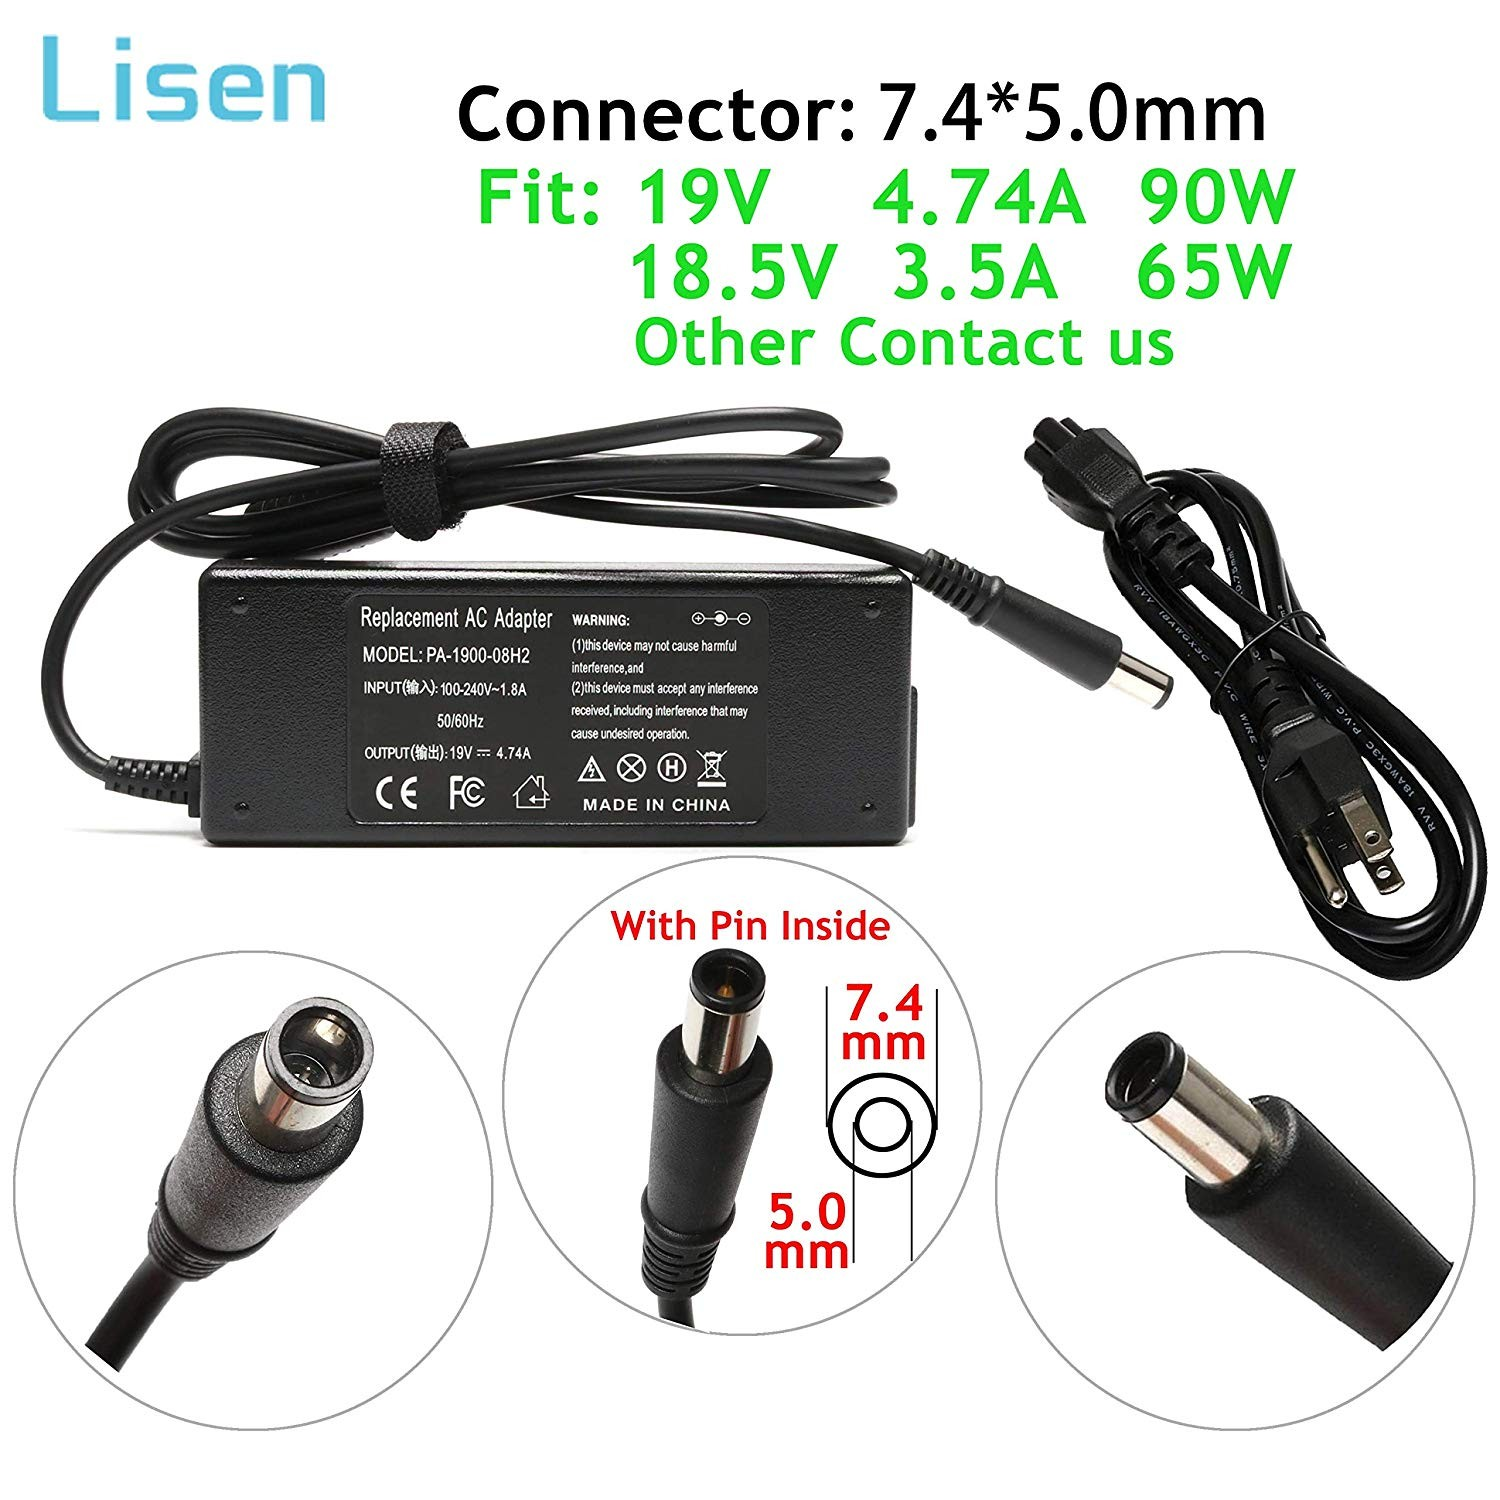 90W 19V 4 74A AC Adapter Charger for HP Pavilion Dv4 Dv6 Dv7 G40 G42 G50 G51 G60 G60T G61 G62 G70 G72 2000 2000 2B19WM 2000 2B29WM 2000 2D11DX HP paq